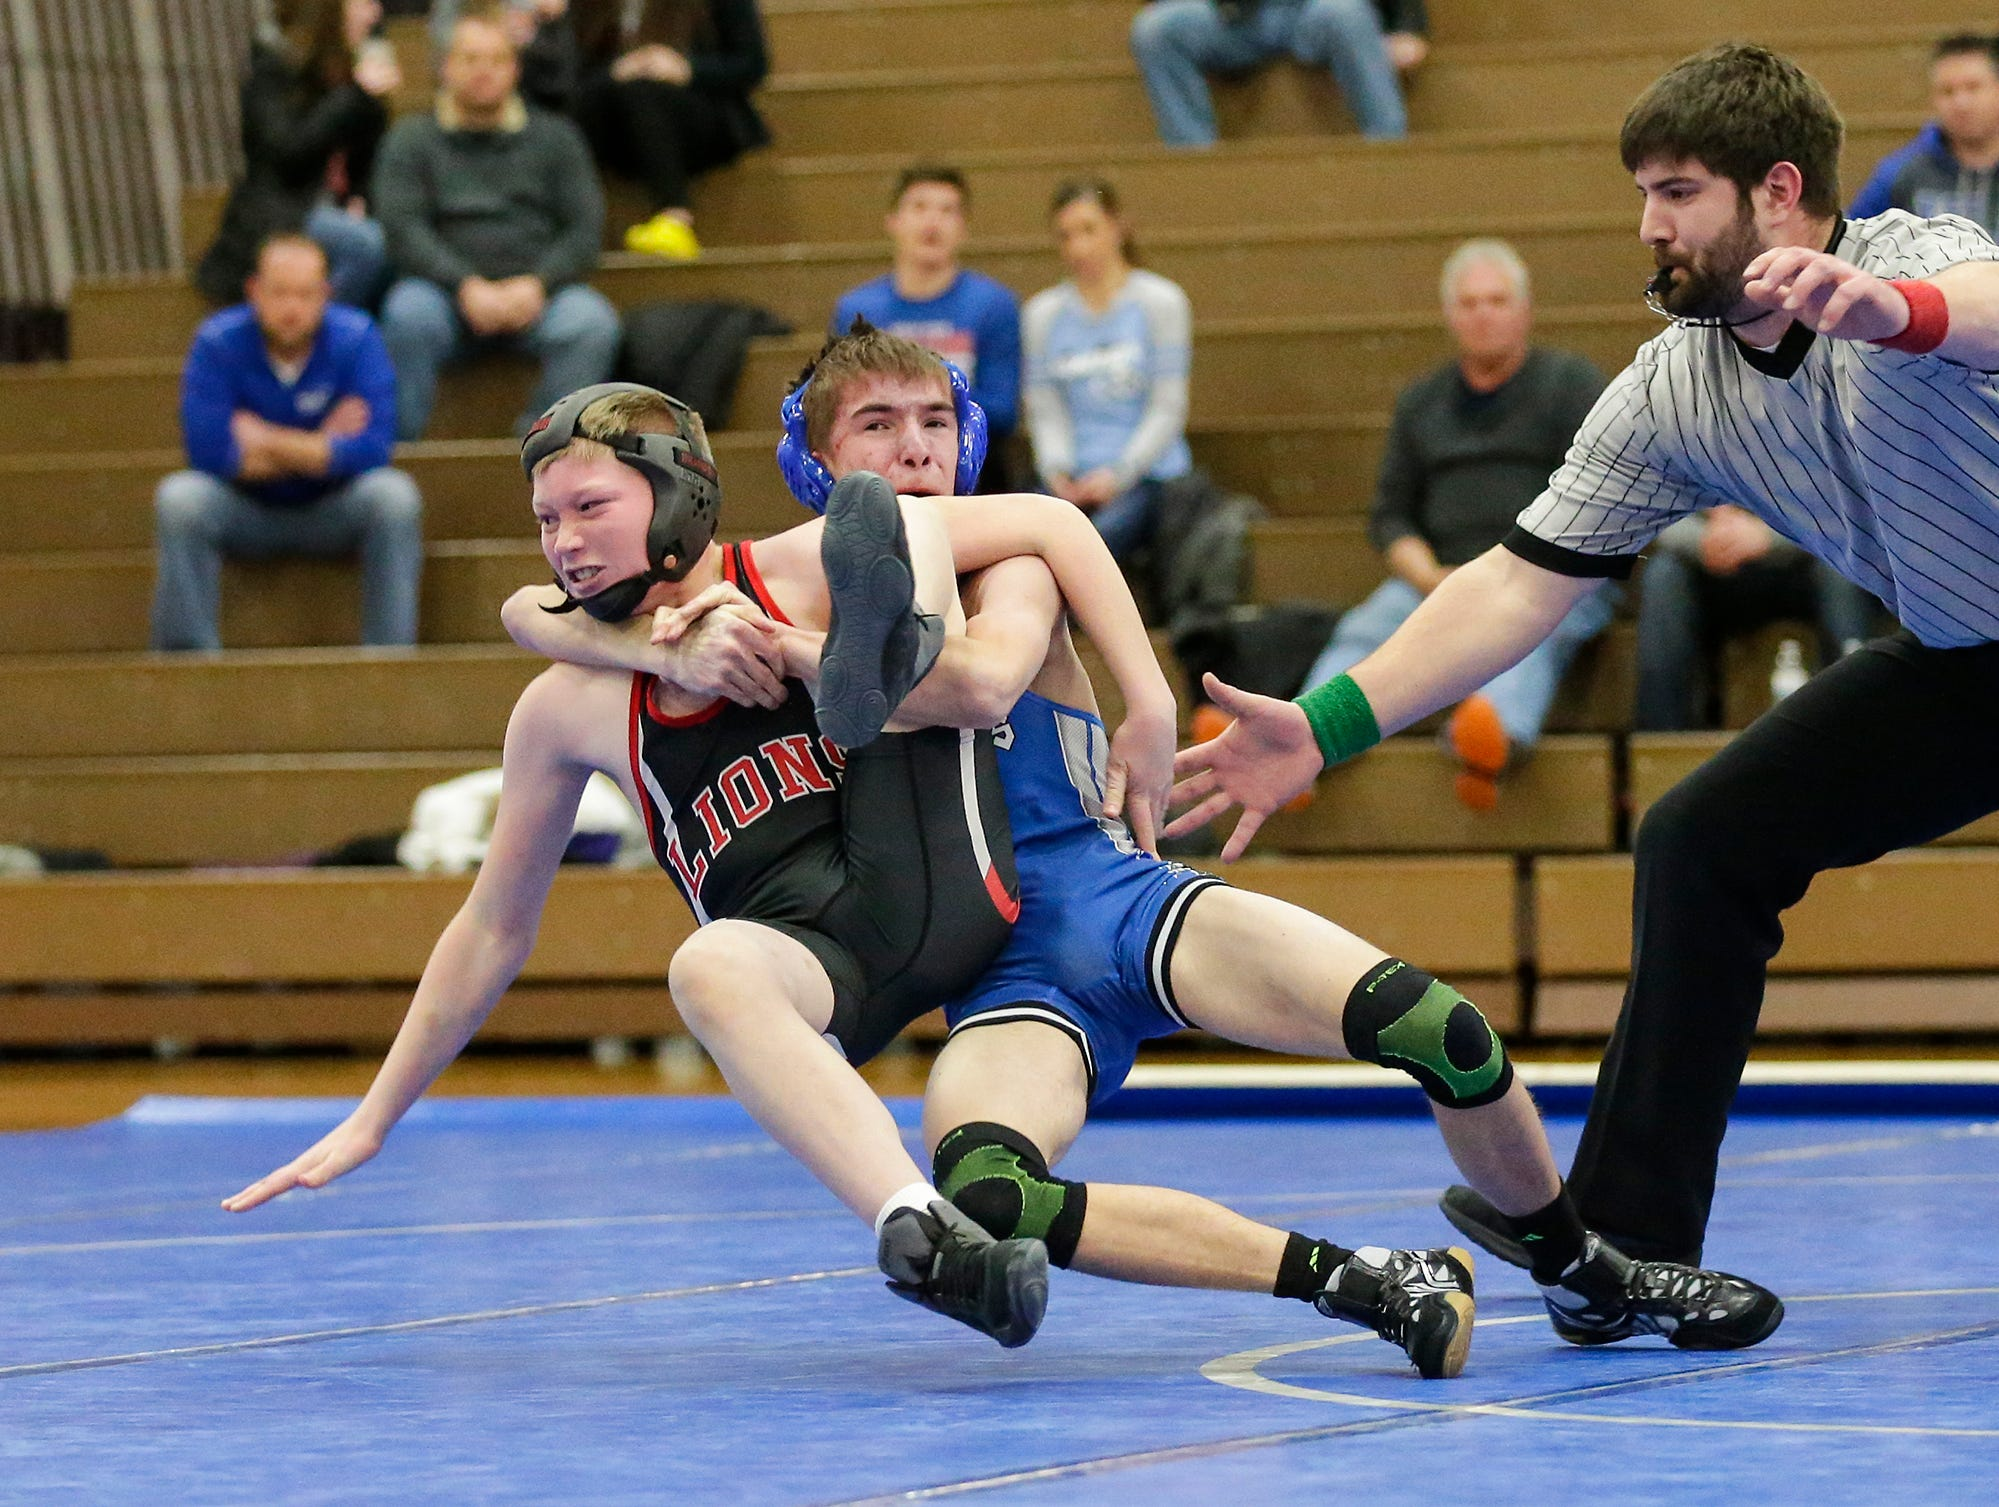 Winnebago Lutheran Academy's Jacob Blitiz wrestles Brandon Faber of Lomira High School in the 113 pound weight class Thursday, January 17, 2019 in Fond du Lac. Faber won by a score of 4-3  and Lomira won the meet 51-22. Doug Raflik/USA TODAY NETWORK-Wisconsin